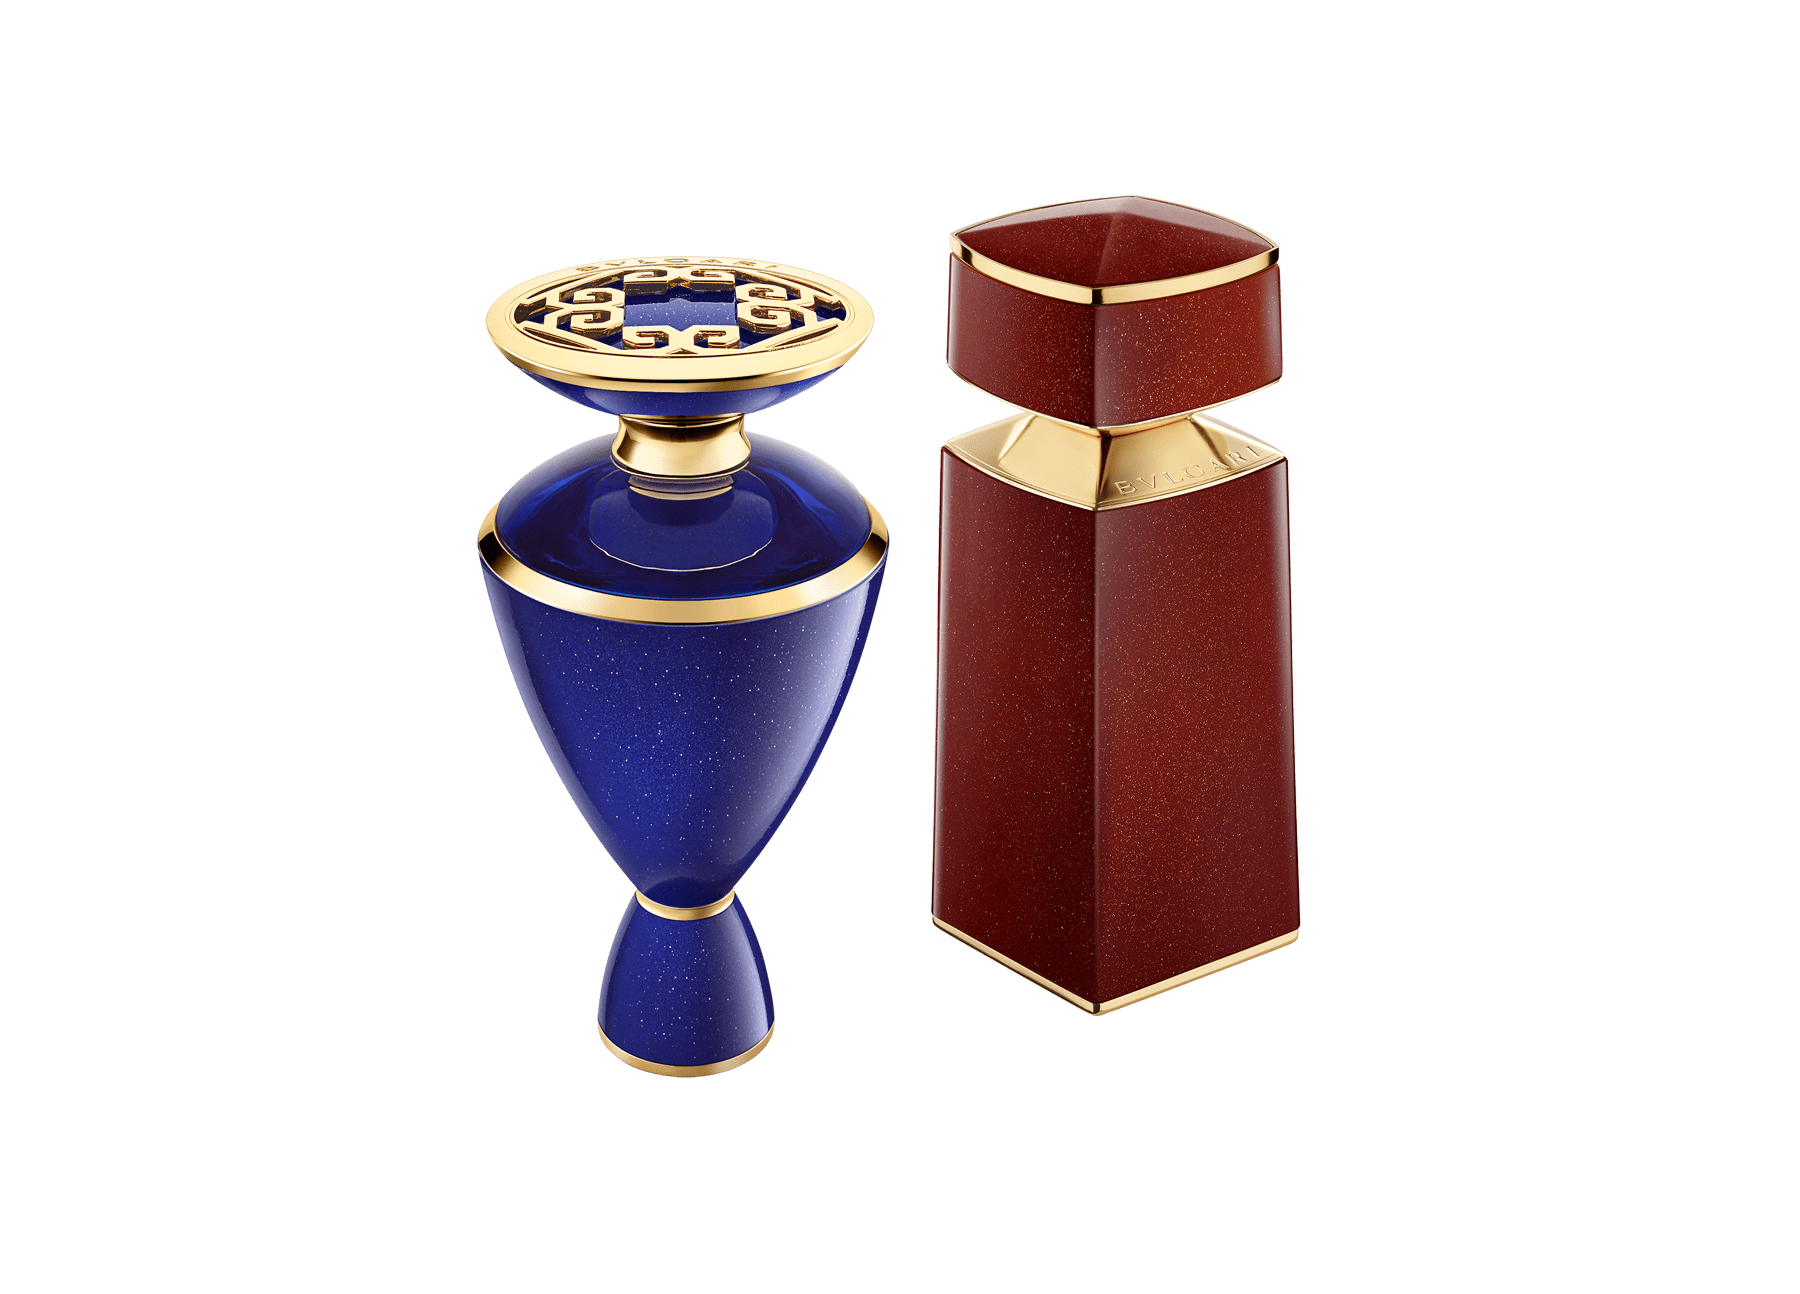 The encounter of two gems of nature: the iridescent Aventurine gemstone and precious Saffron spice harmoniously give way to this magnificent new fragrance collector's duo 41507 image 1